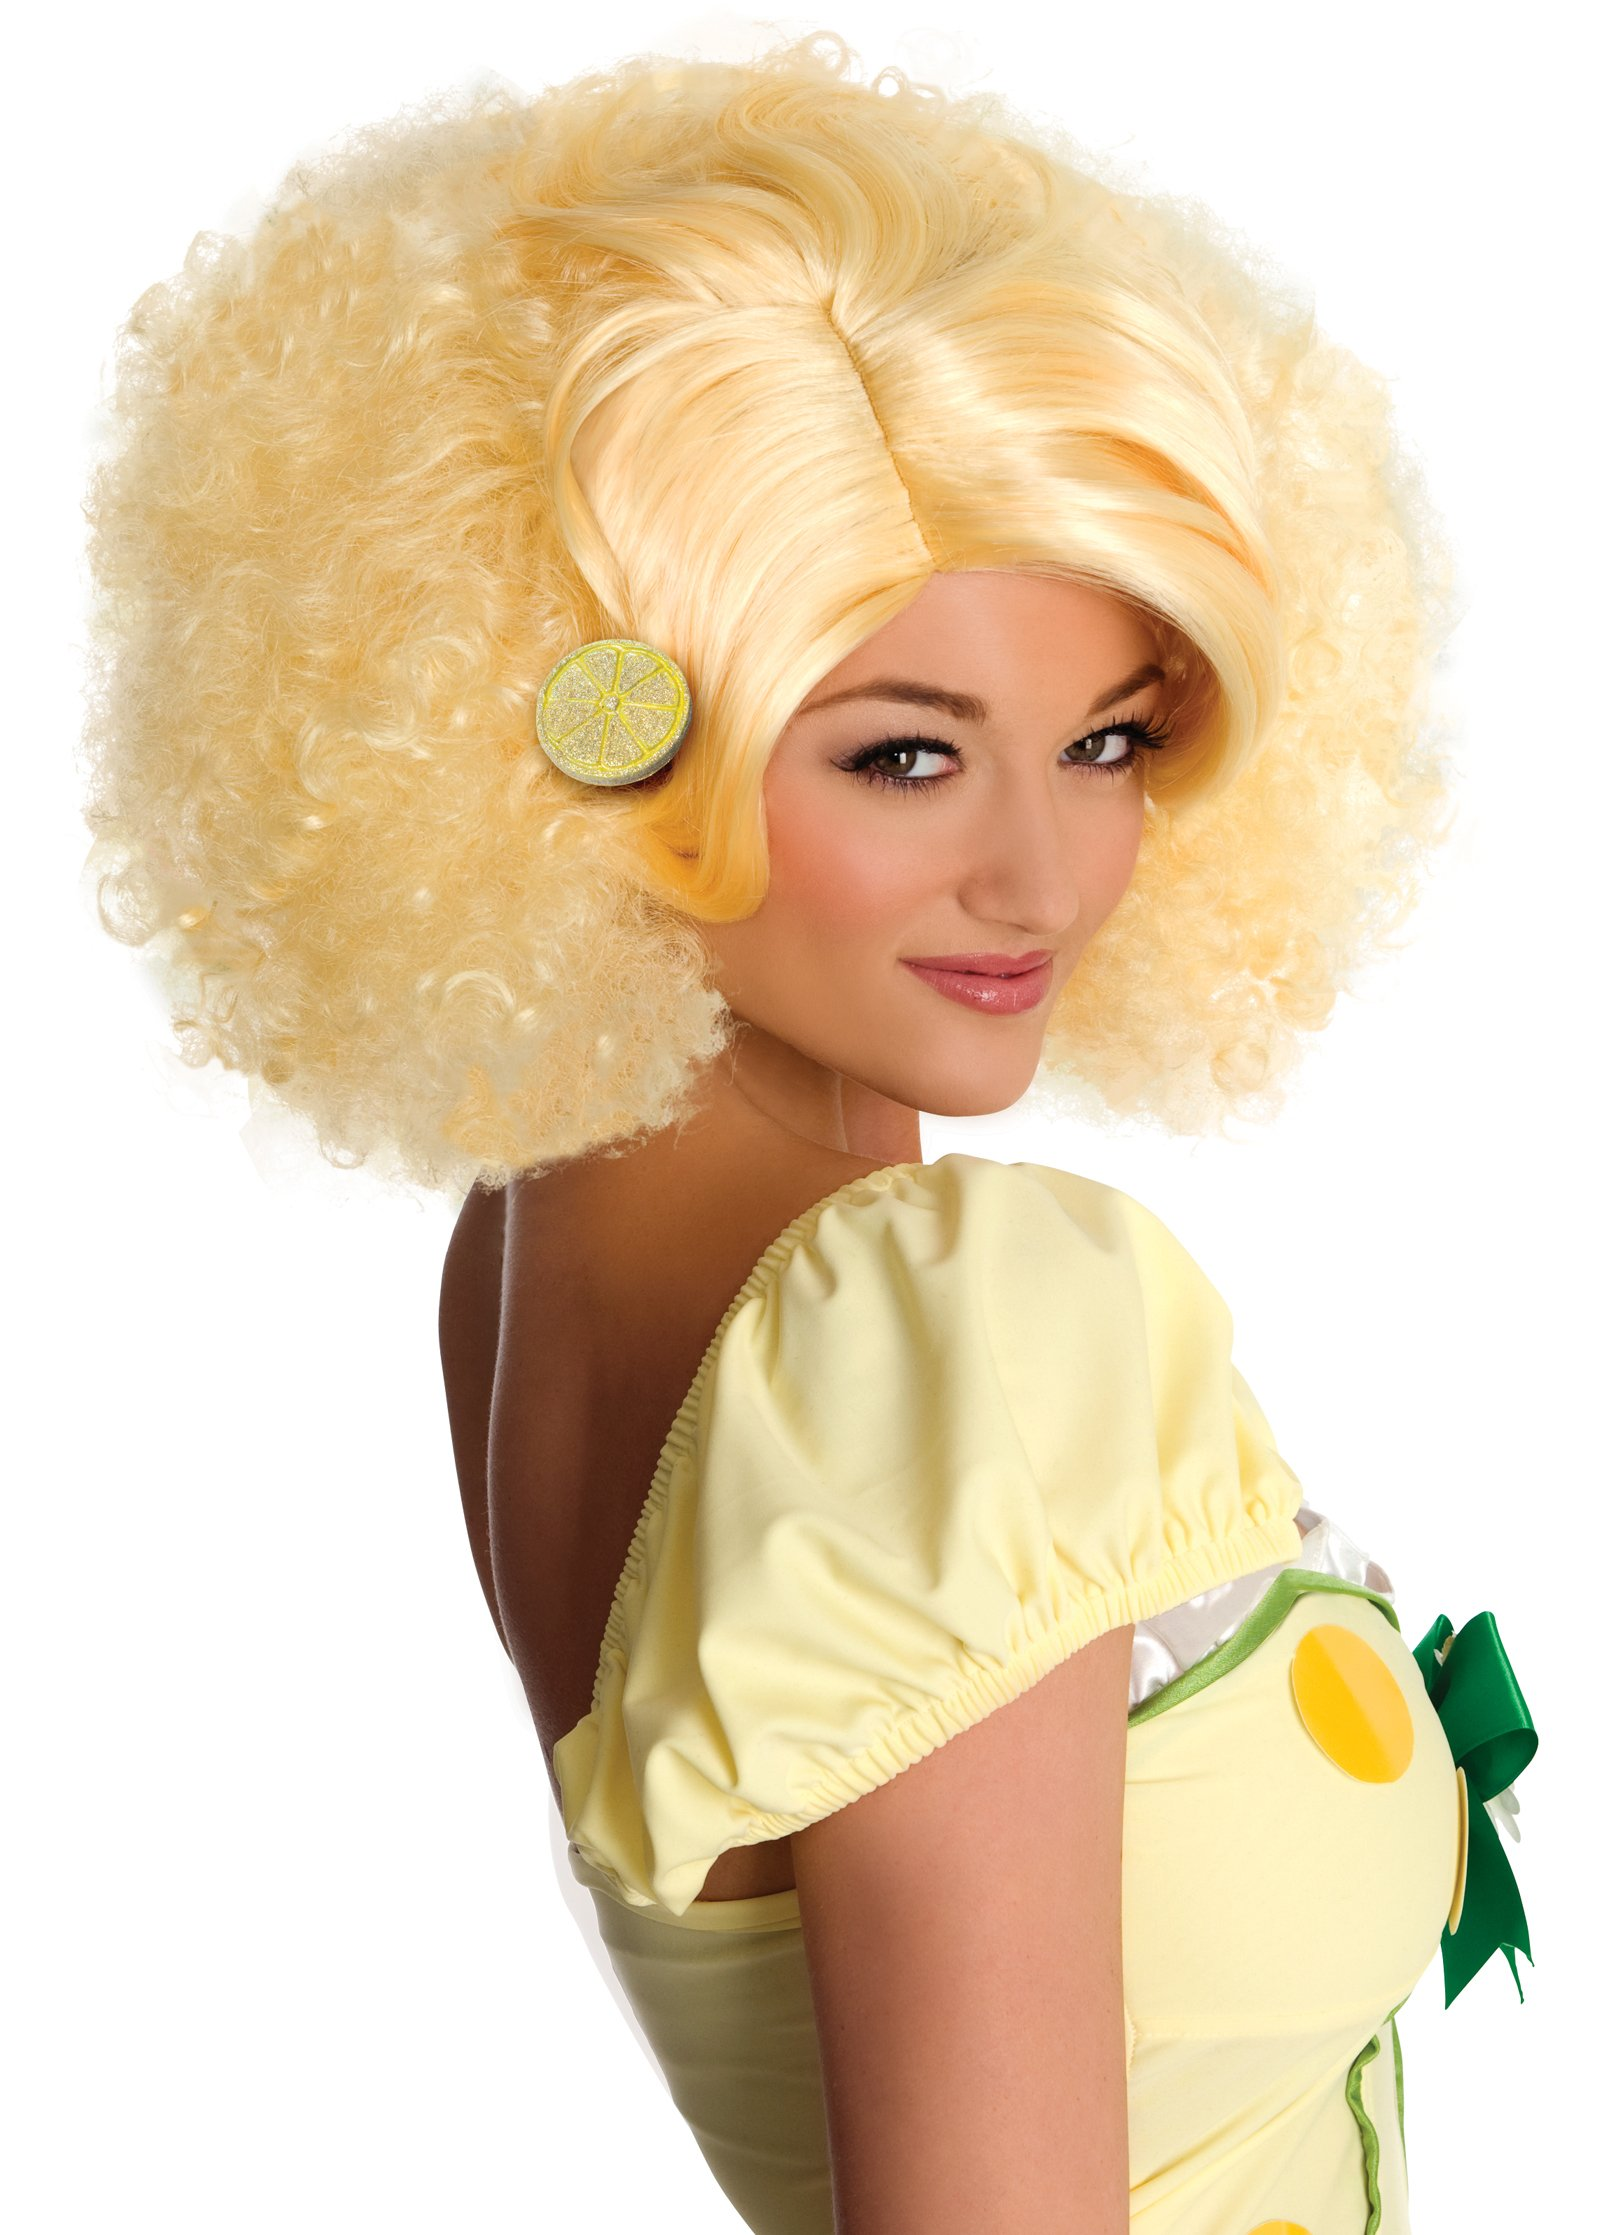 Strawberry Shortcake - Deluxe Lemon Meringue Wig (Adult)